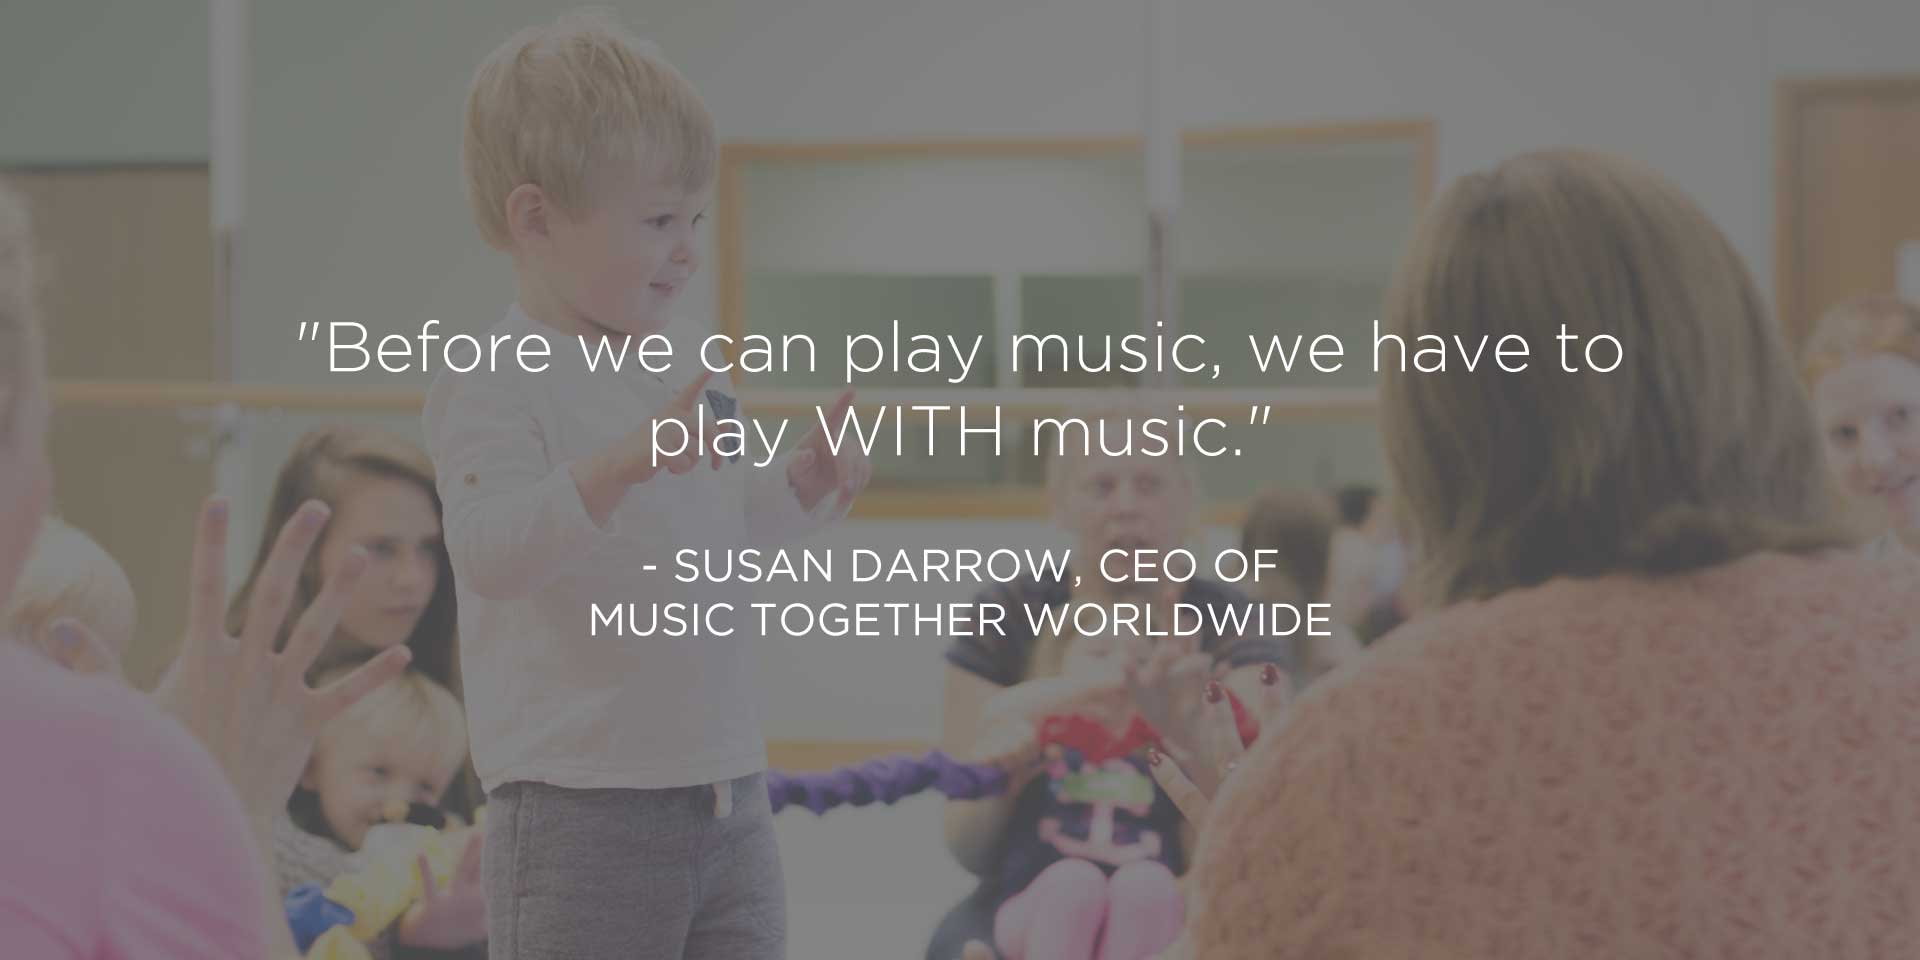 """Before we can play music, we have to play WITH music."" - Susan Darrow, CEO Music Together Worldwide"